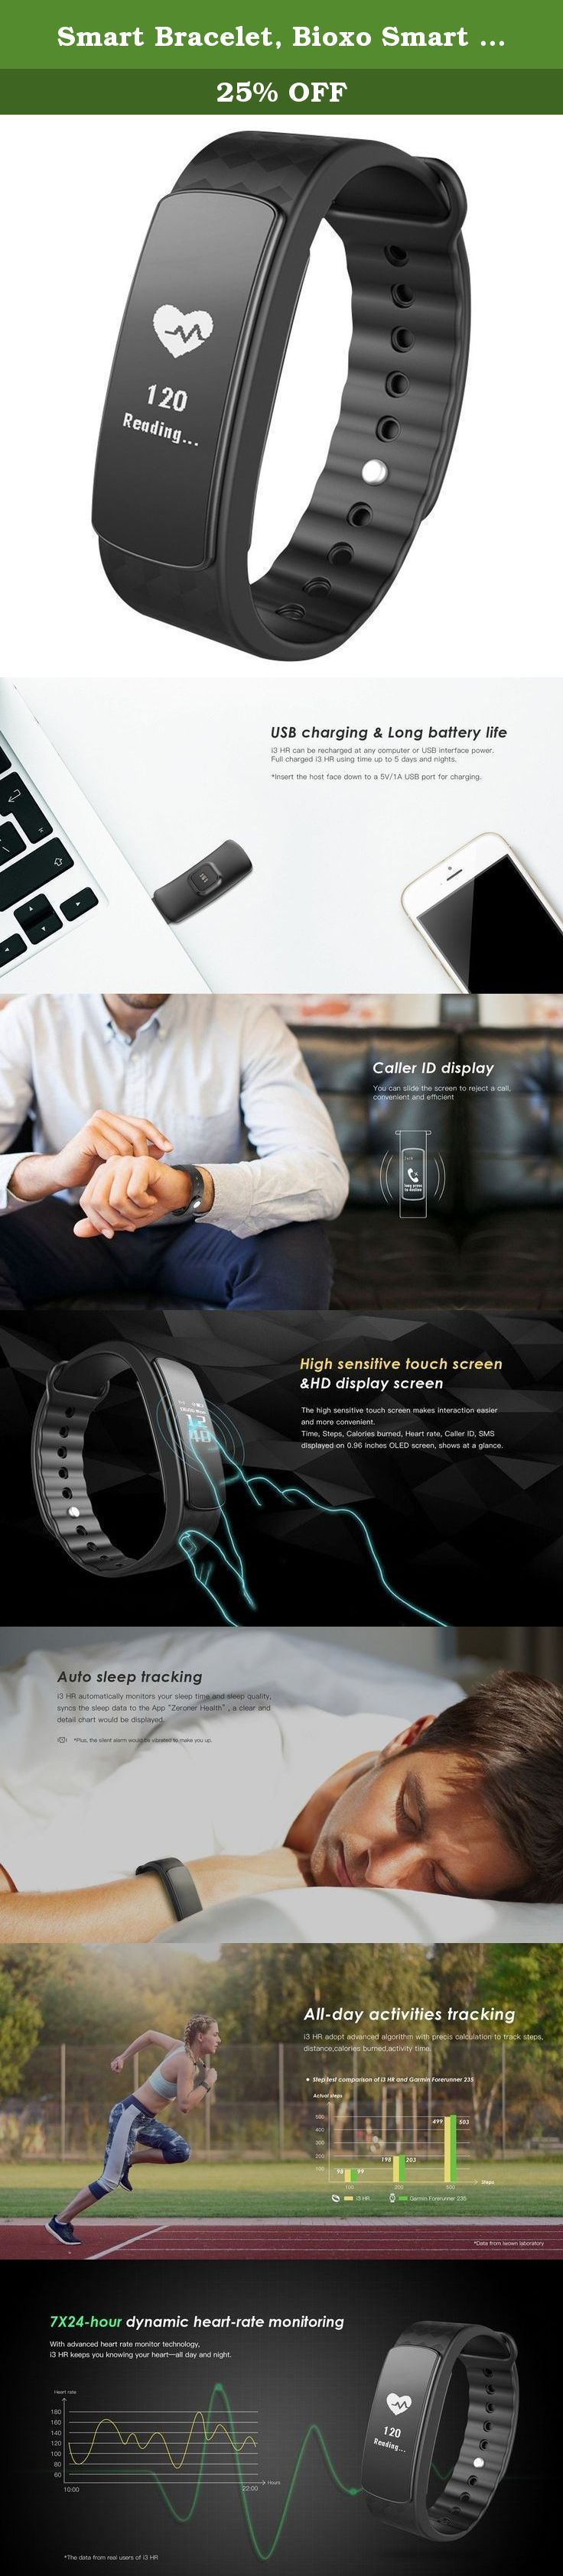 """Smart Bracelet, Bioxo Smart Fitness Bracelets Heart Rate Monitor 0.96"""" OLED Touch Screen Waterproof Smartwatch Wristband Sleep Tracker for iPhone 7/ 7 Plus/ 6s/ 6s Plus, Android Smartphone, Black. Specifications: 1.Screen Size: 0.96 OLED 2.Screen resolution: 128*64 3.Weight: 19g 4.Product size: 49.0*19*10mm 5.Ingress Protection: IP67 6.System Requirement: iOS 8.0;Android 4.4 or Above (not for Windows phone) 7.Wrist strap: 252mm 8.Battery life:UP to 5-7 days 8.Battery capacity:75mAh..."""